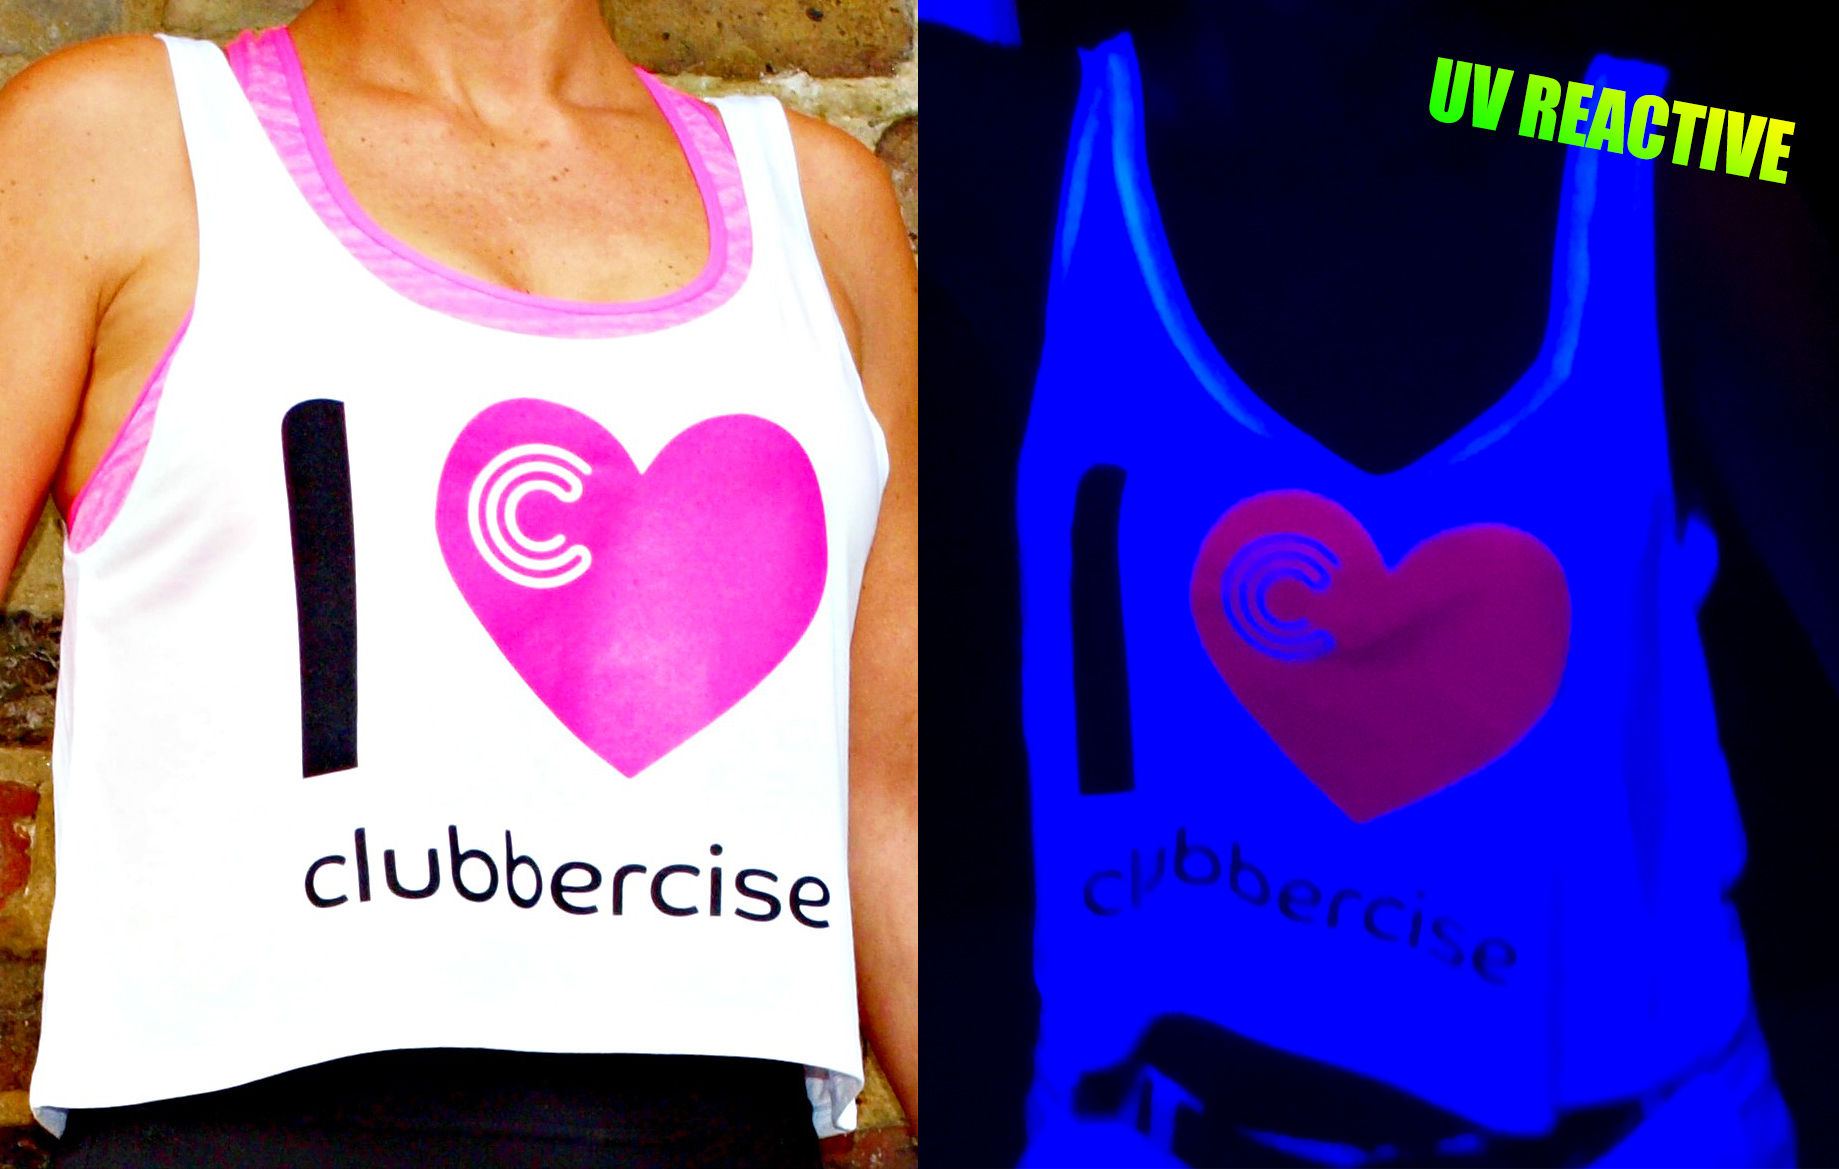 1-iloveclubbercise-top-shop_1